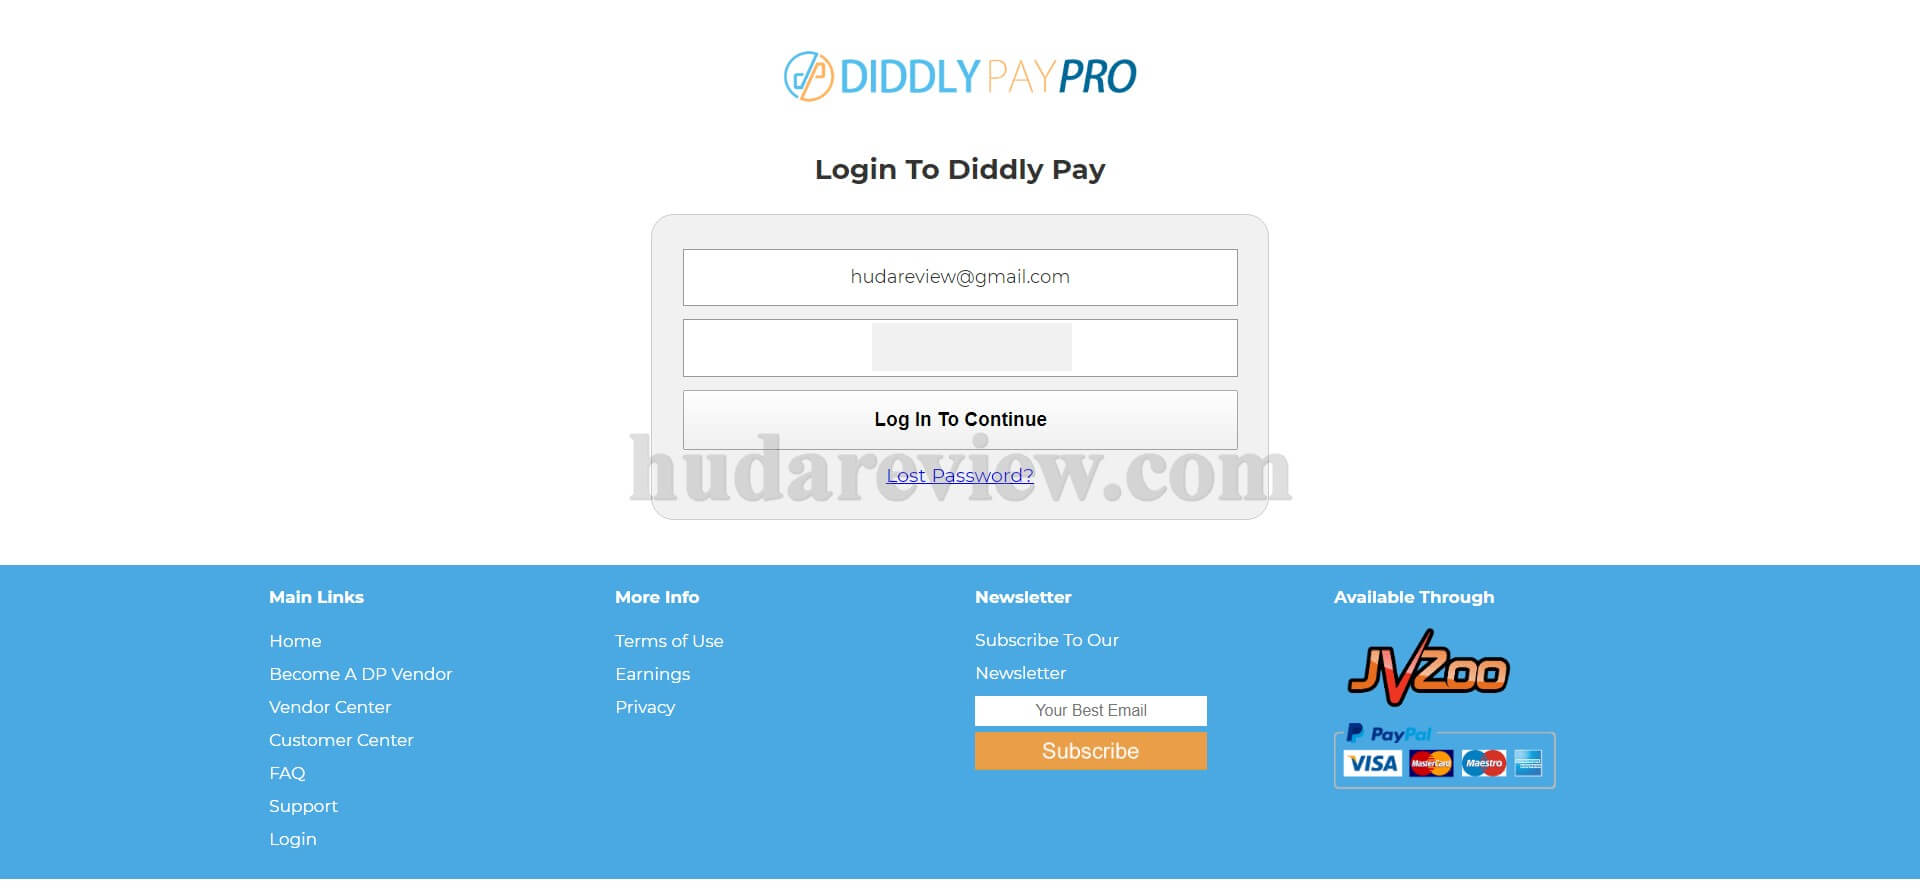 DiddlyPay-PRO-Step-1-1